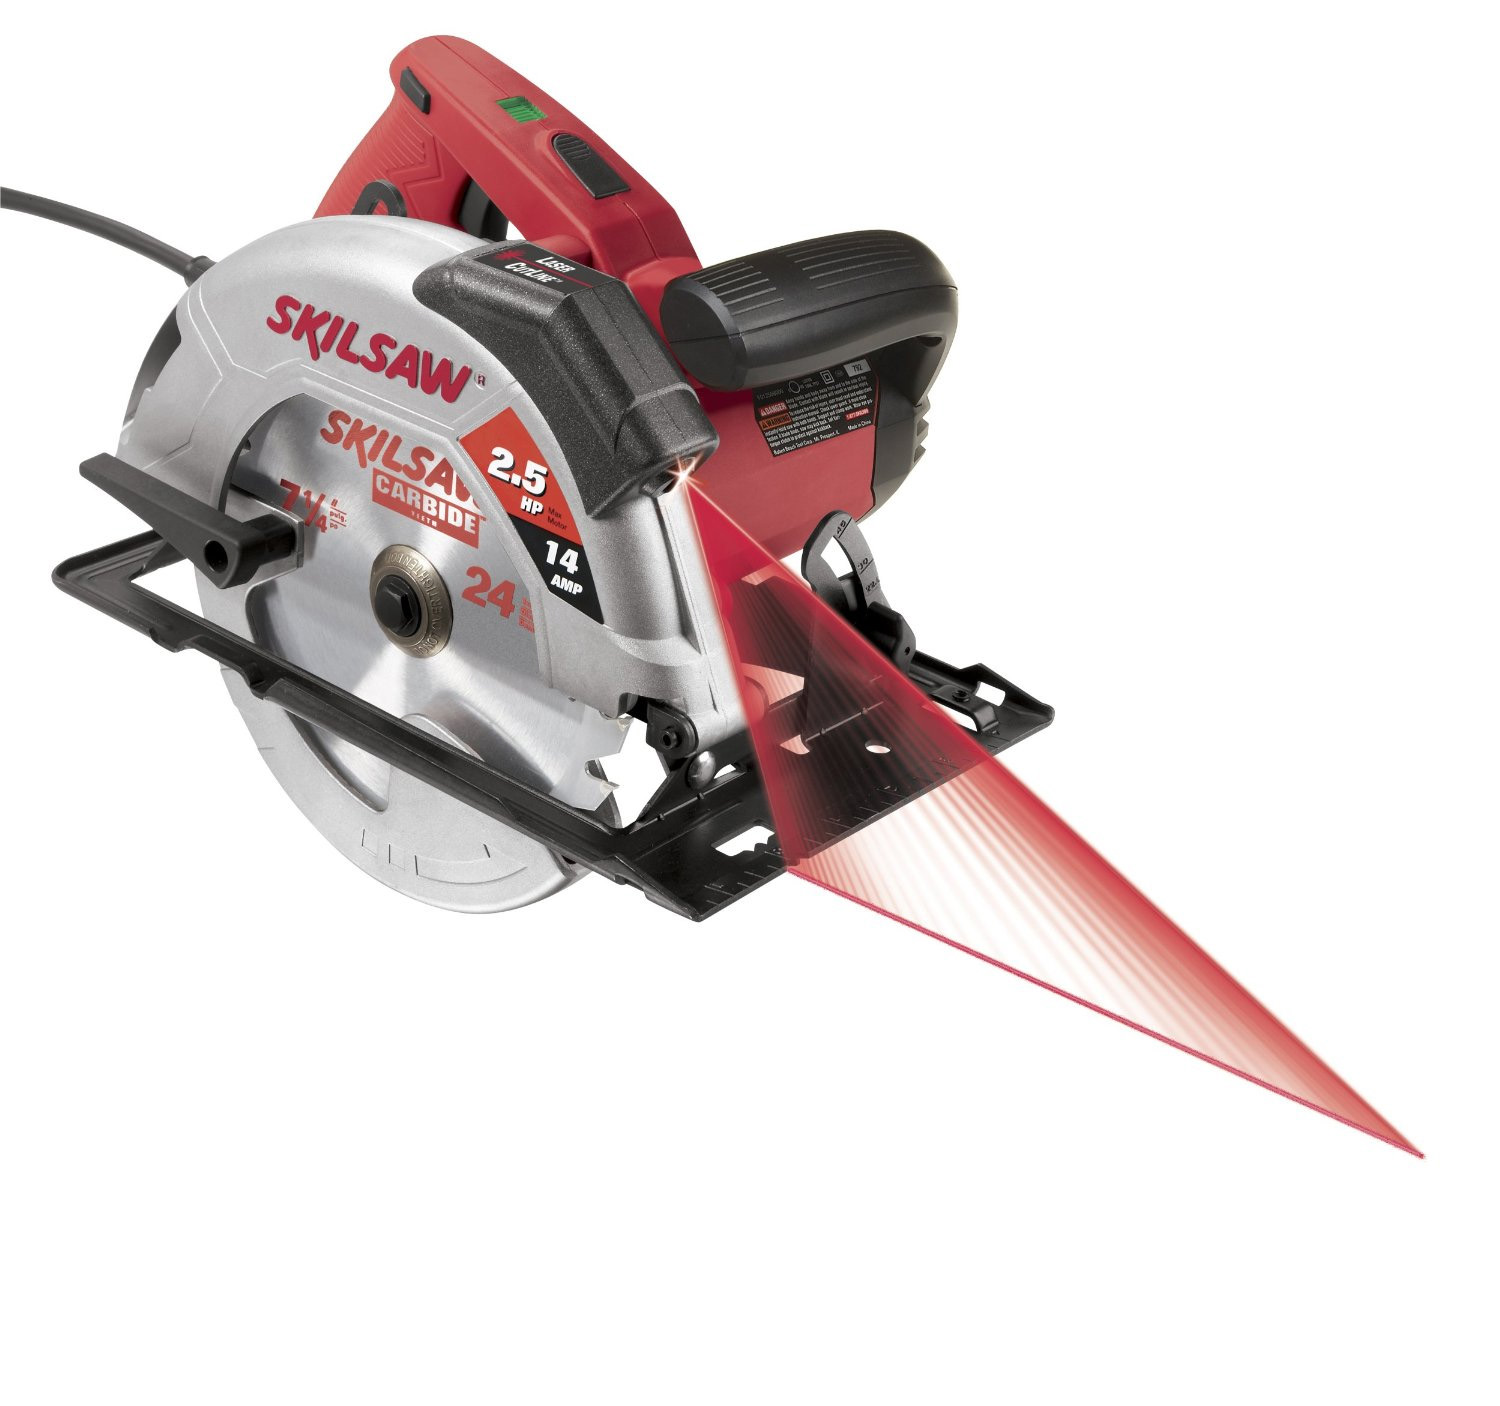 SKiL 13 Amp 7-1/4-Inch Circular Saw ( Refurbished) | 5680-01